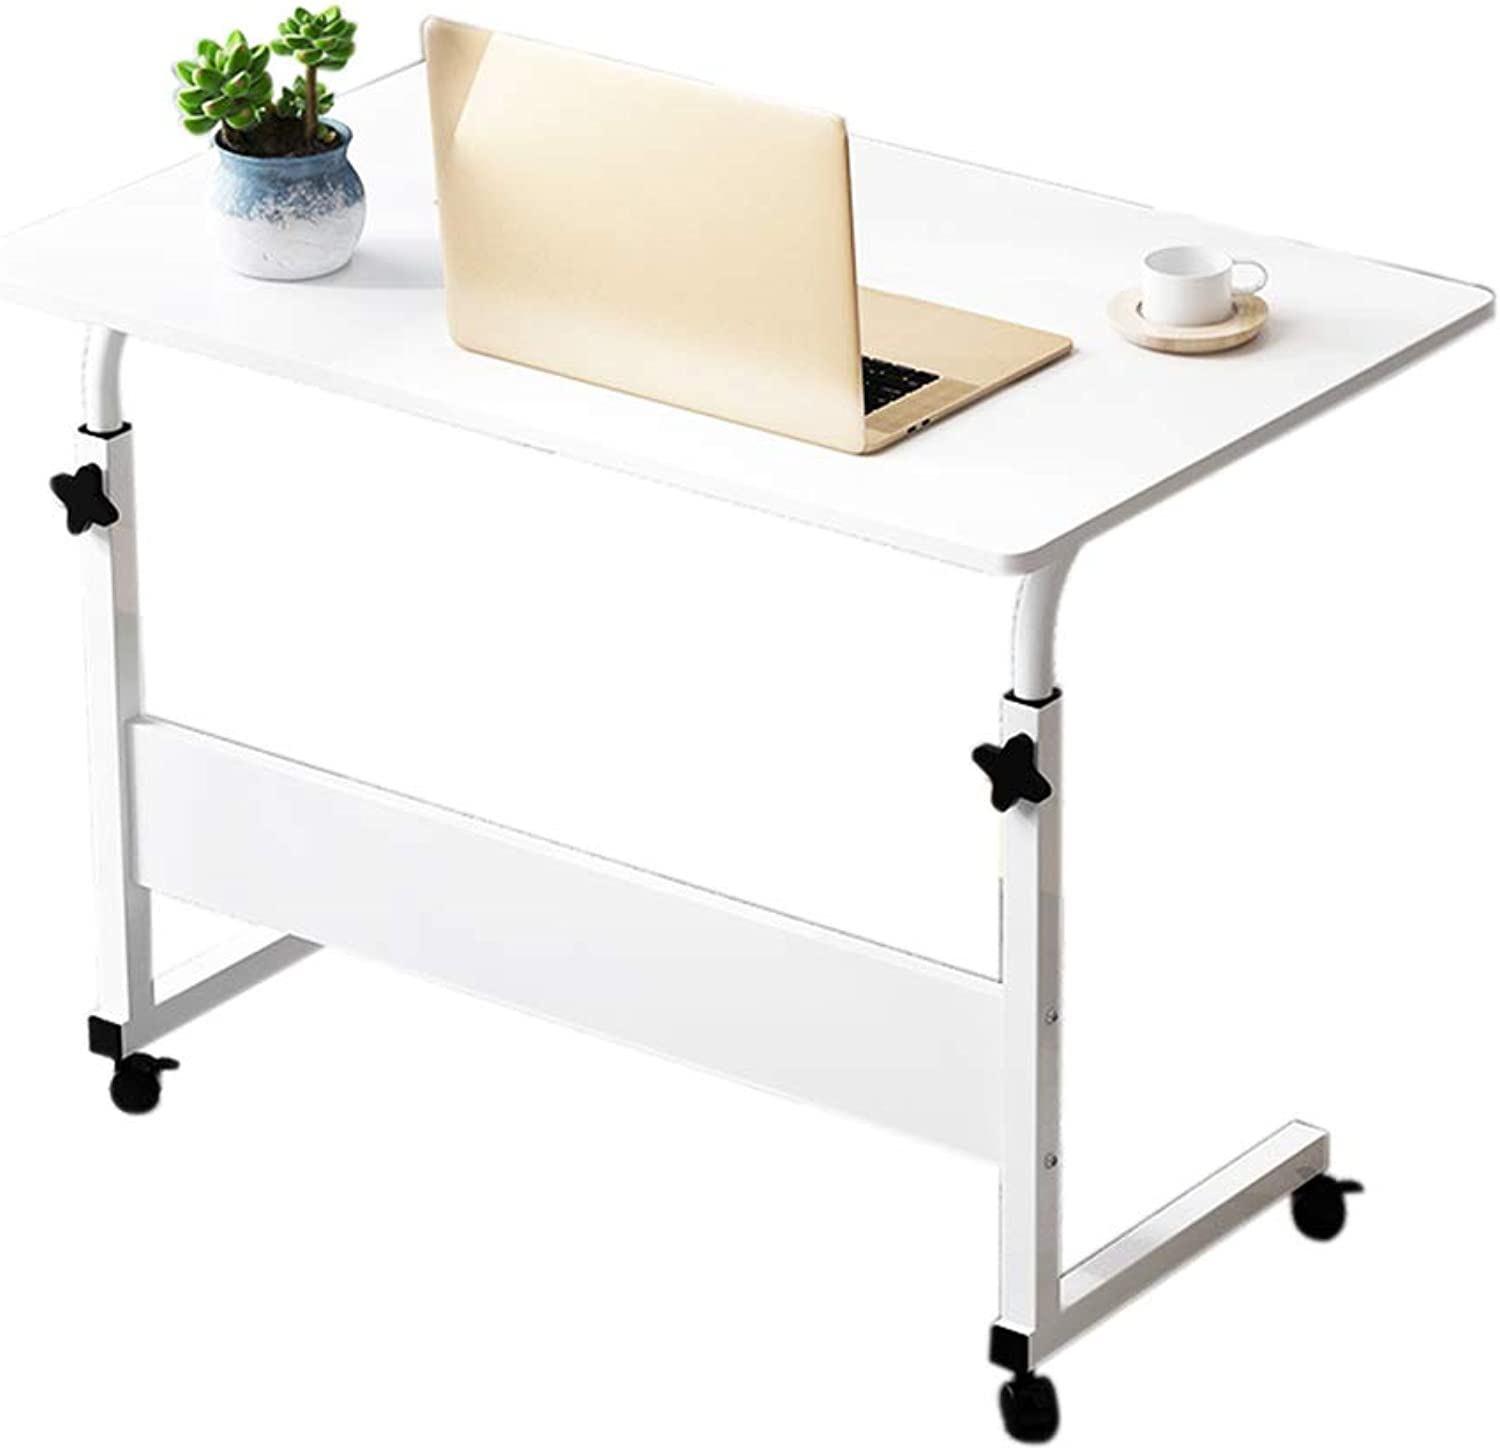 Mobile Laptop Desk, Lazy Table for Household Bed - Simple Lift Table - Stylish Small Desk